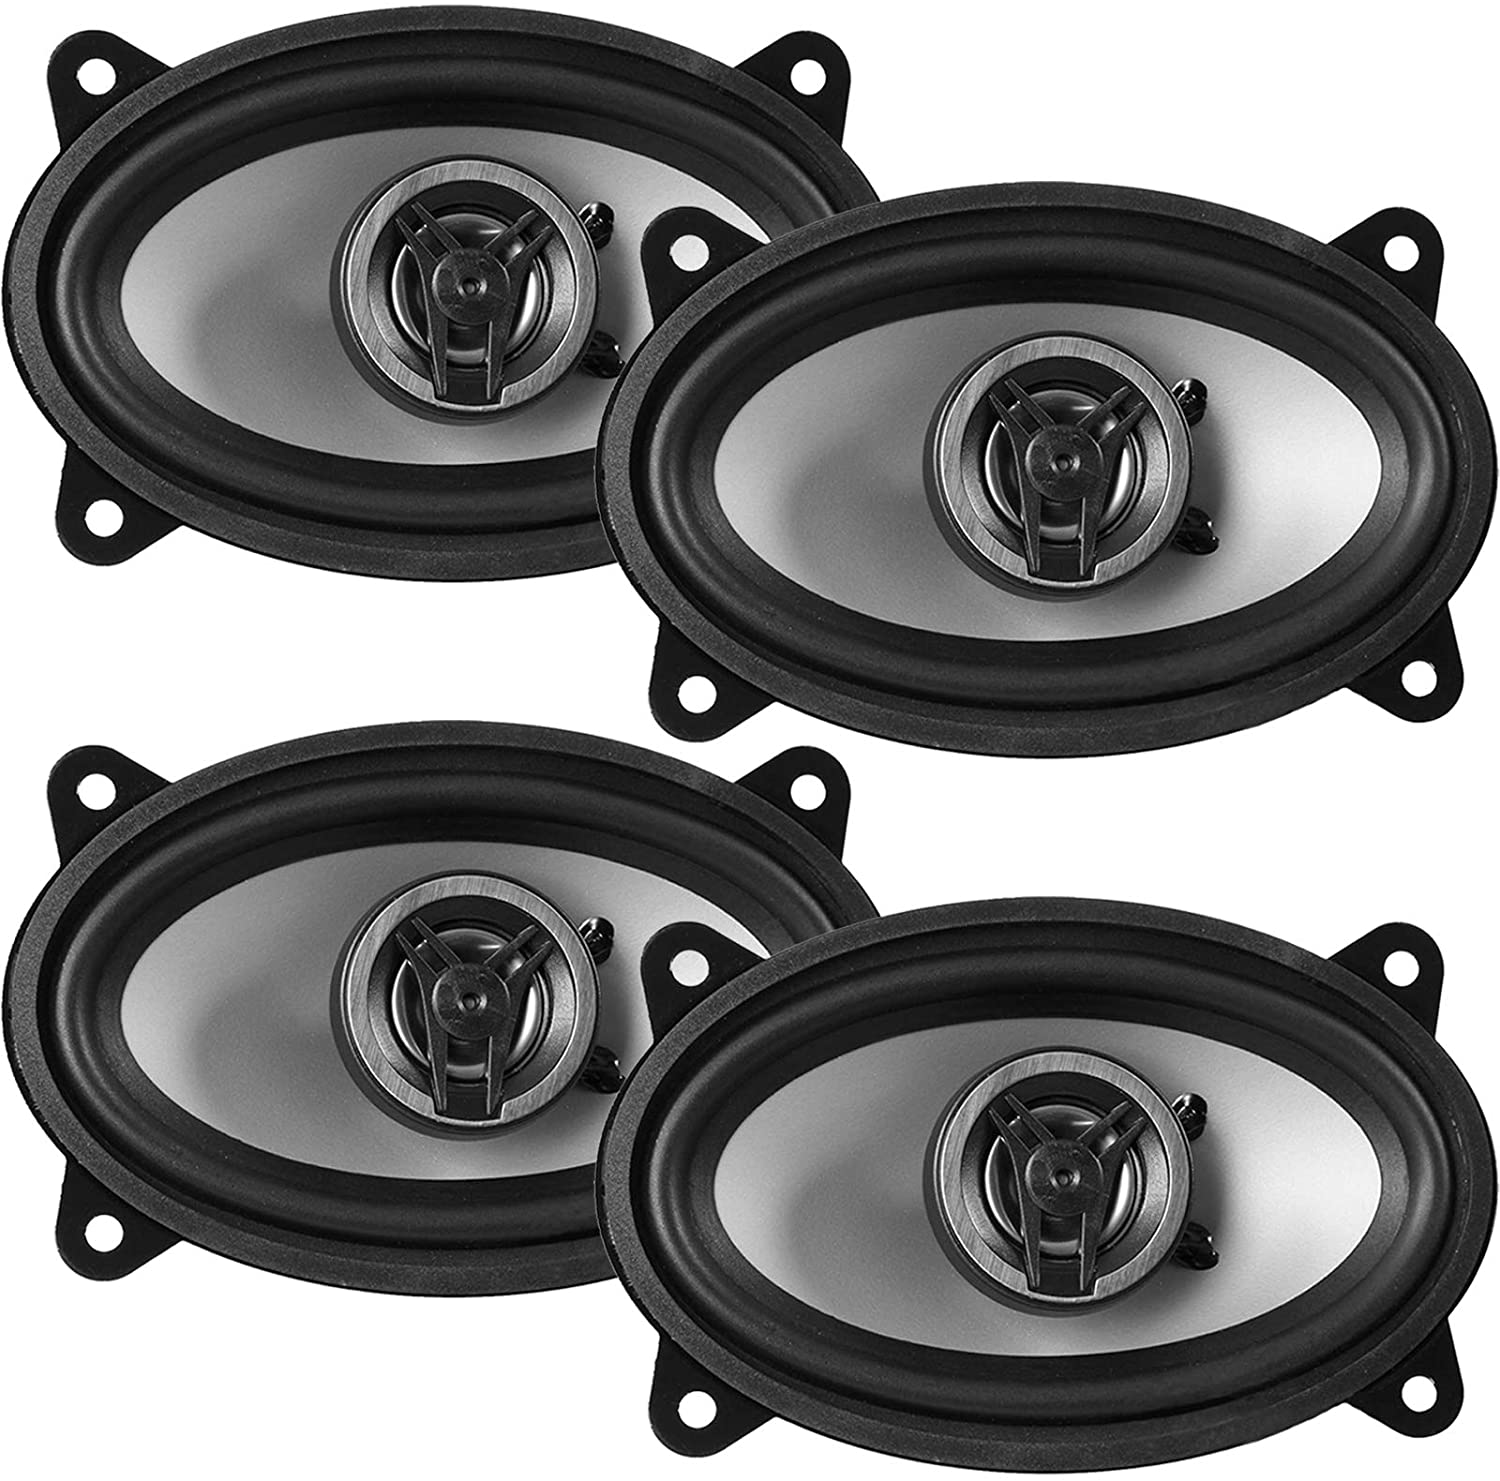 2 Pairs of (Qty 4) of Crunch 4x6 250W Max Power Coaxial 2-Way Full-Range Automotive Speakers